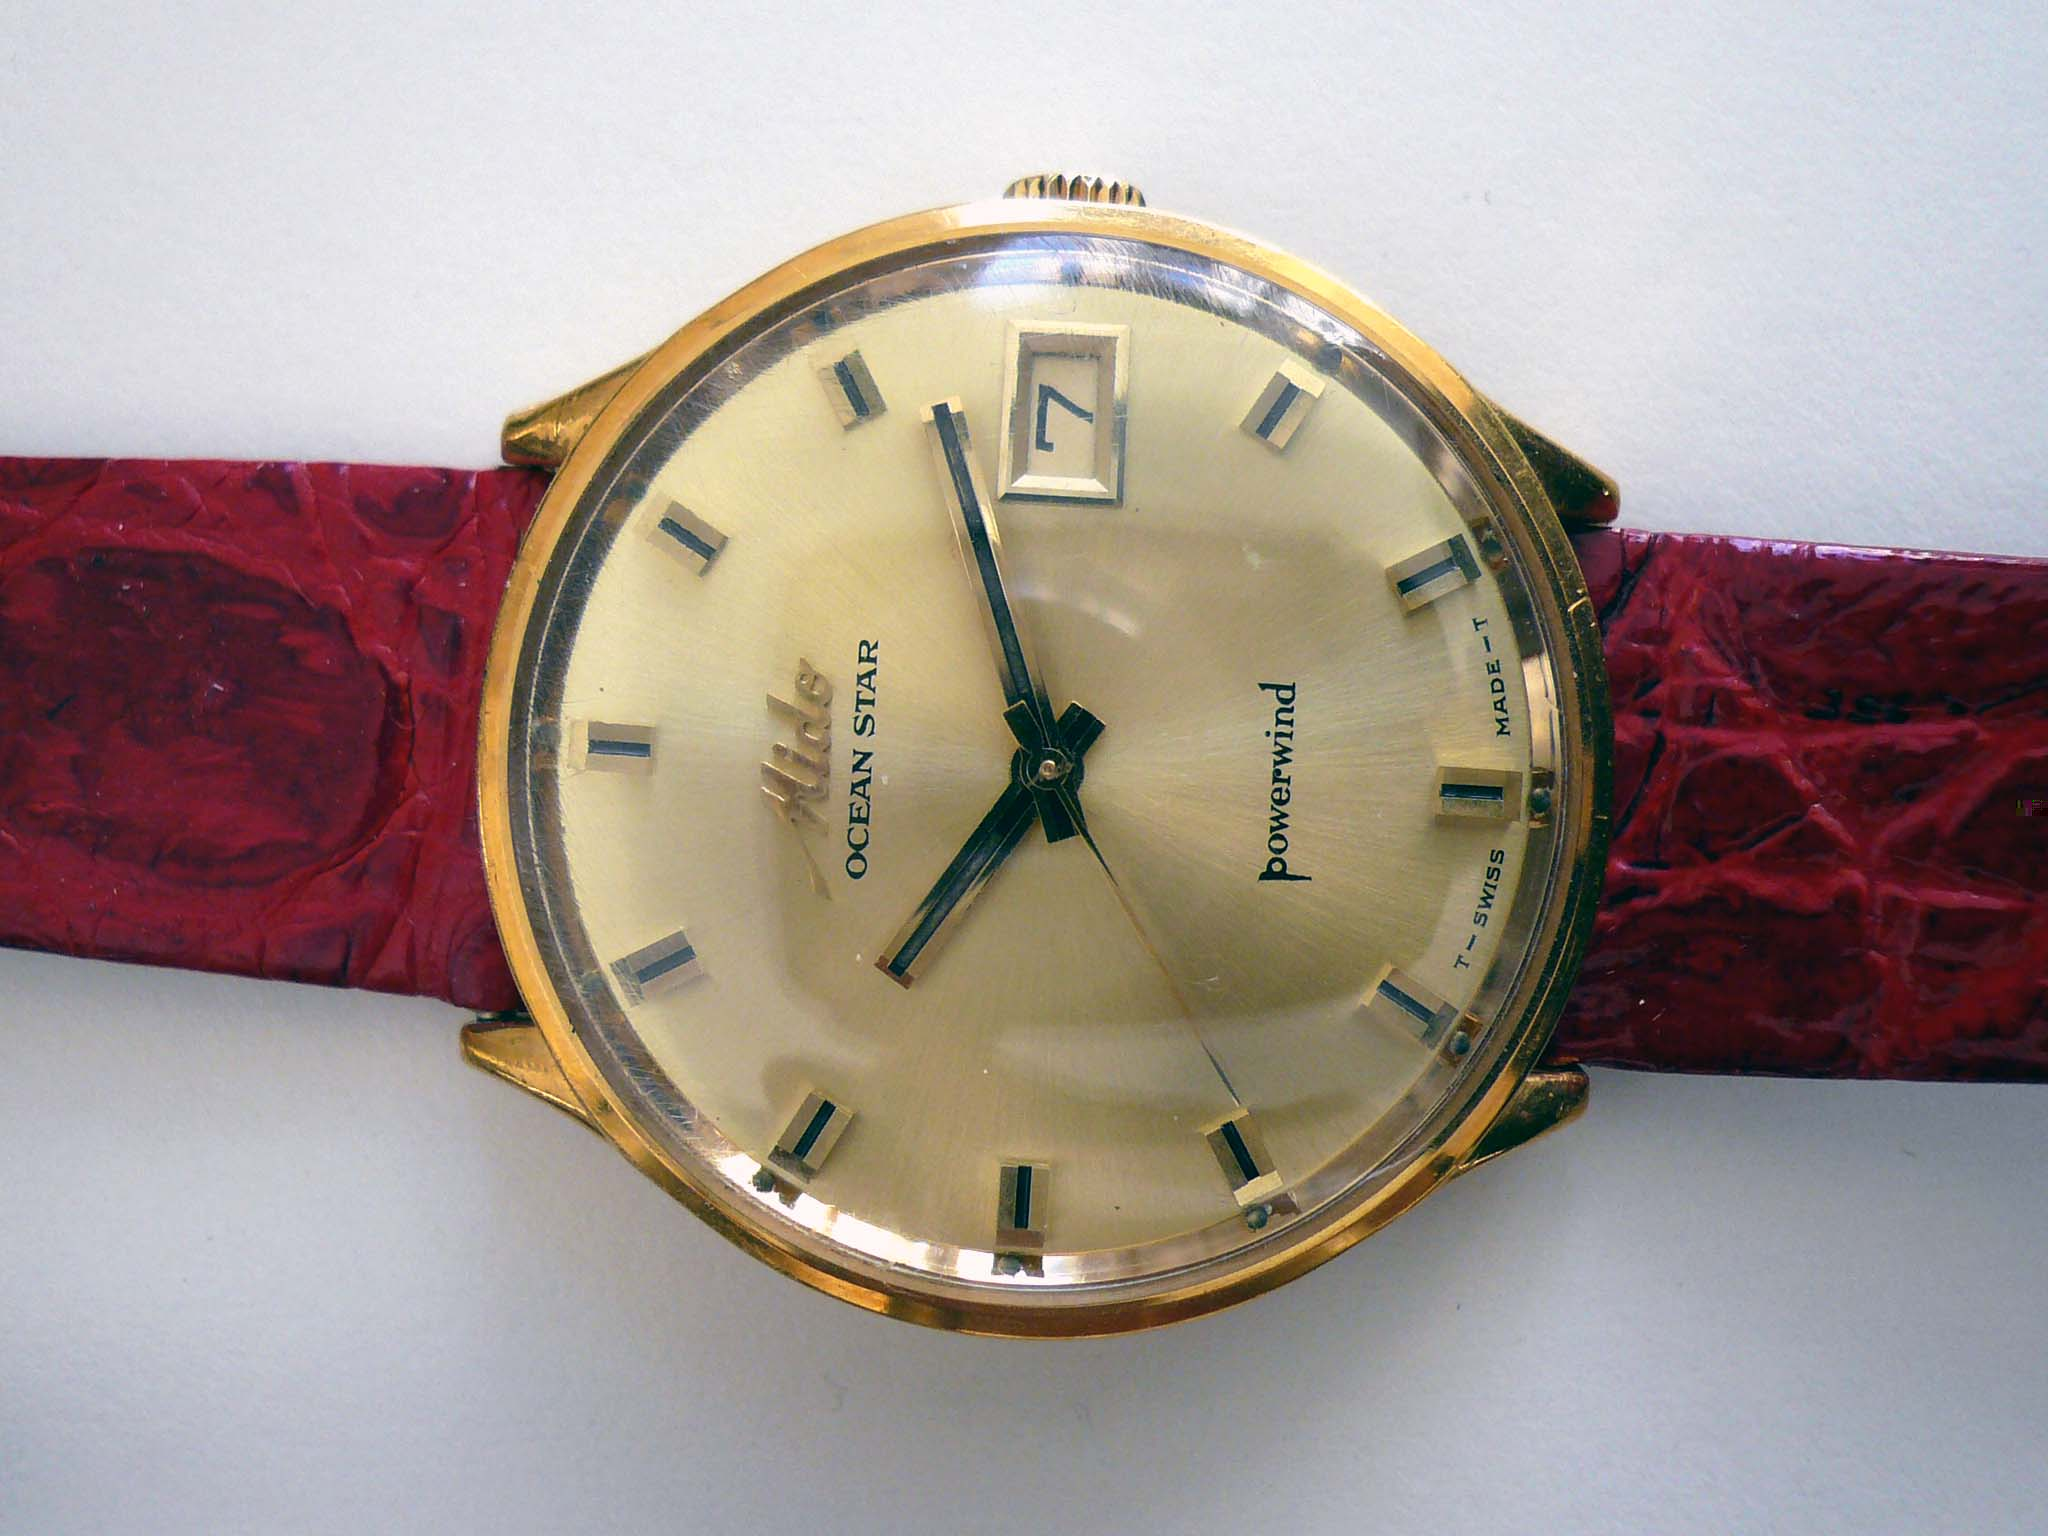 Vintage Swiss Watches